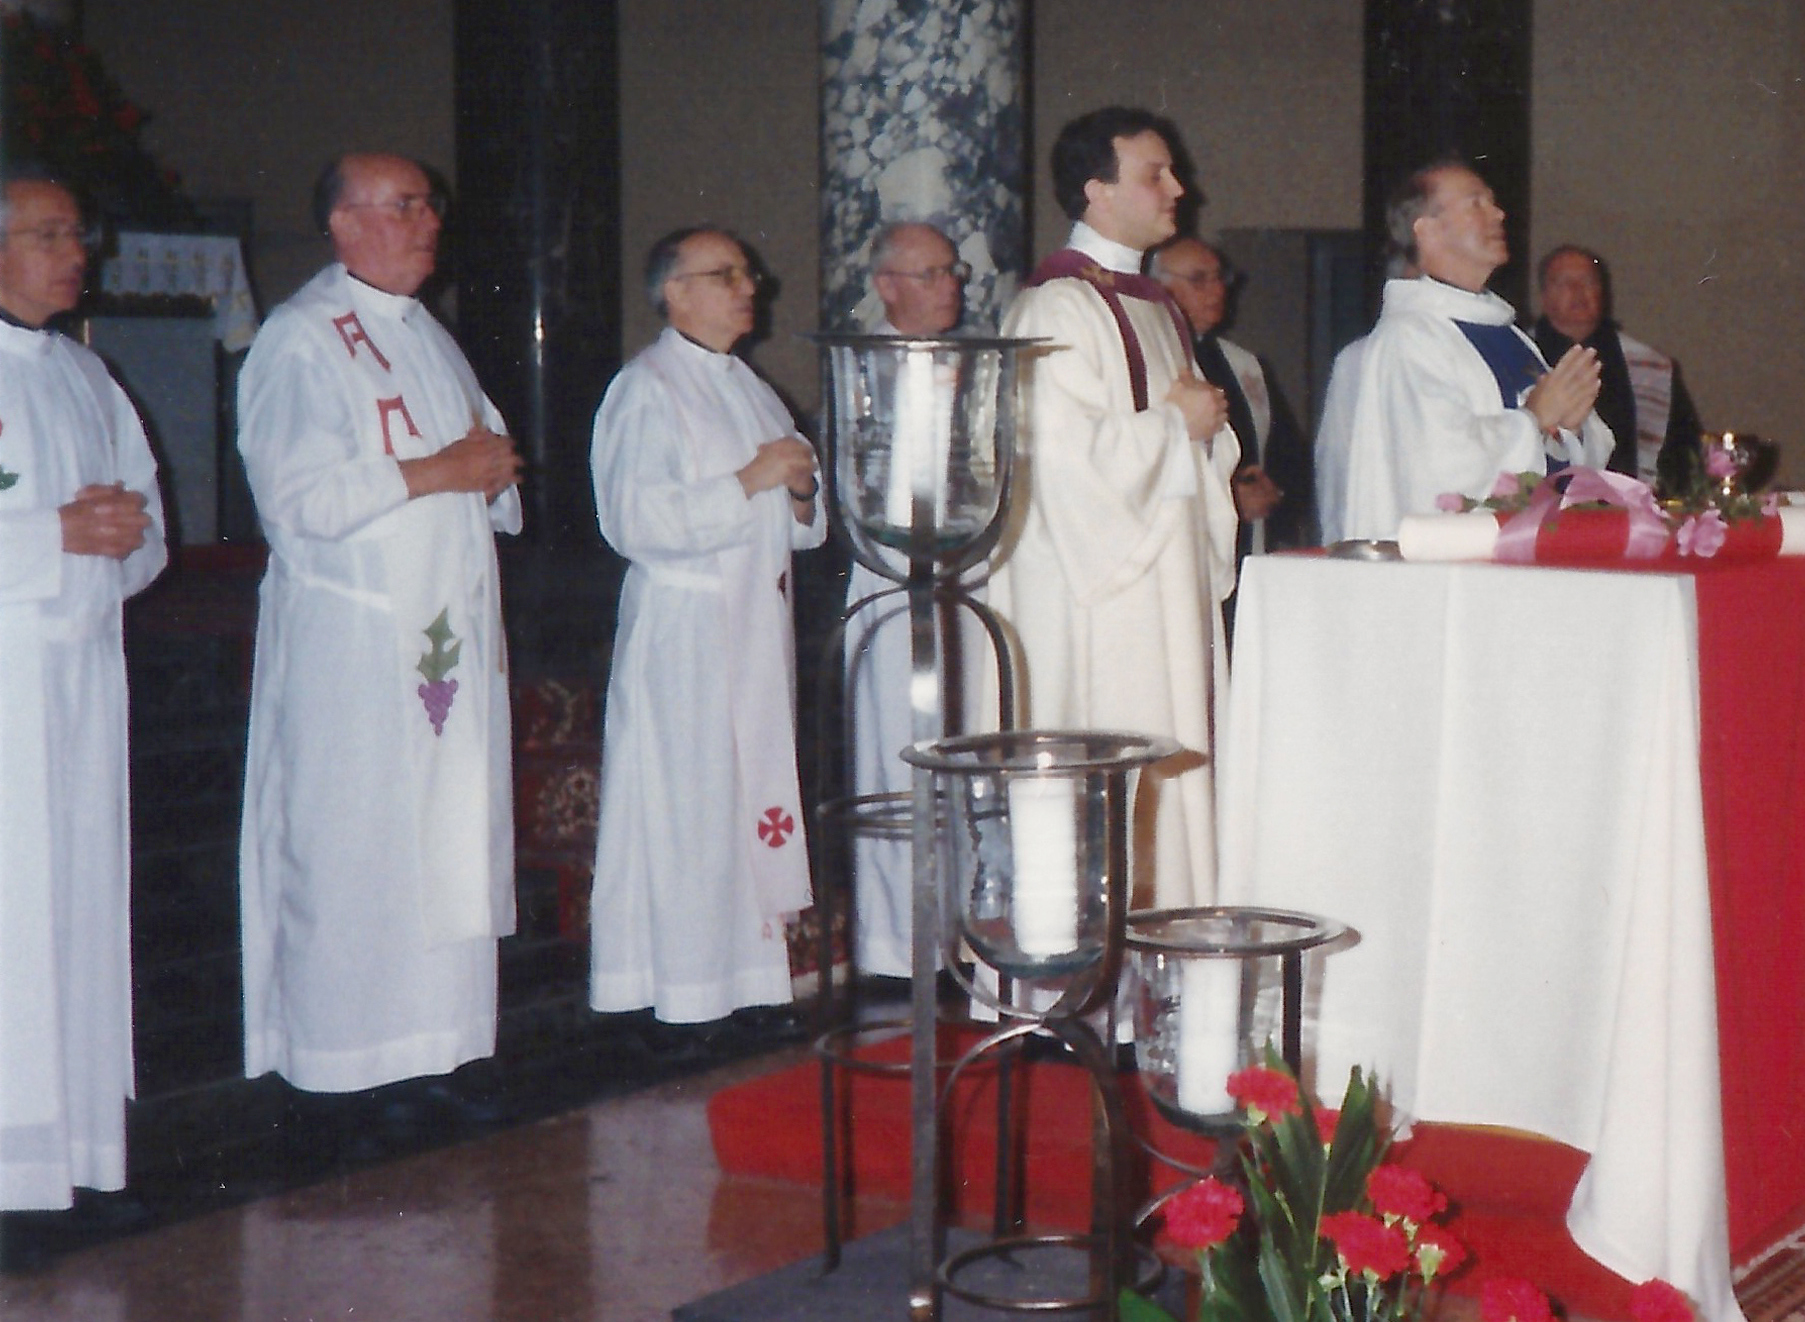 Fr. David L. Brecht, O.S.A., pictured here celebrates Mass at St. Rita Parish in Chicago during his time as Provincial.